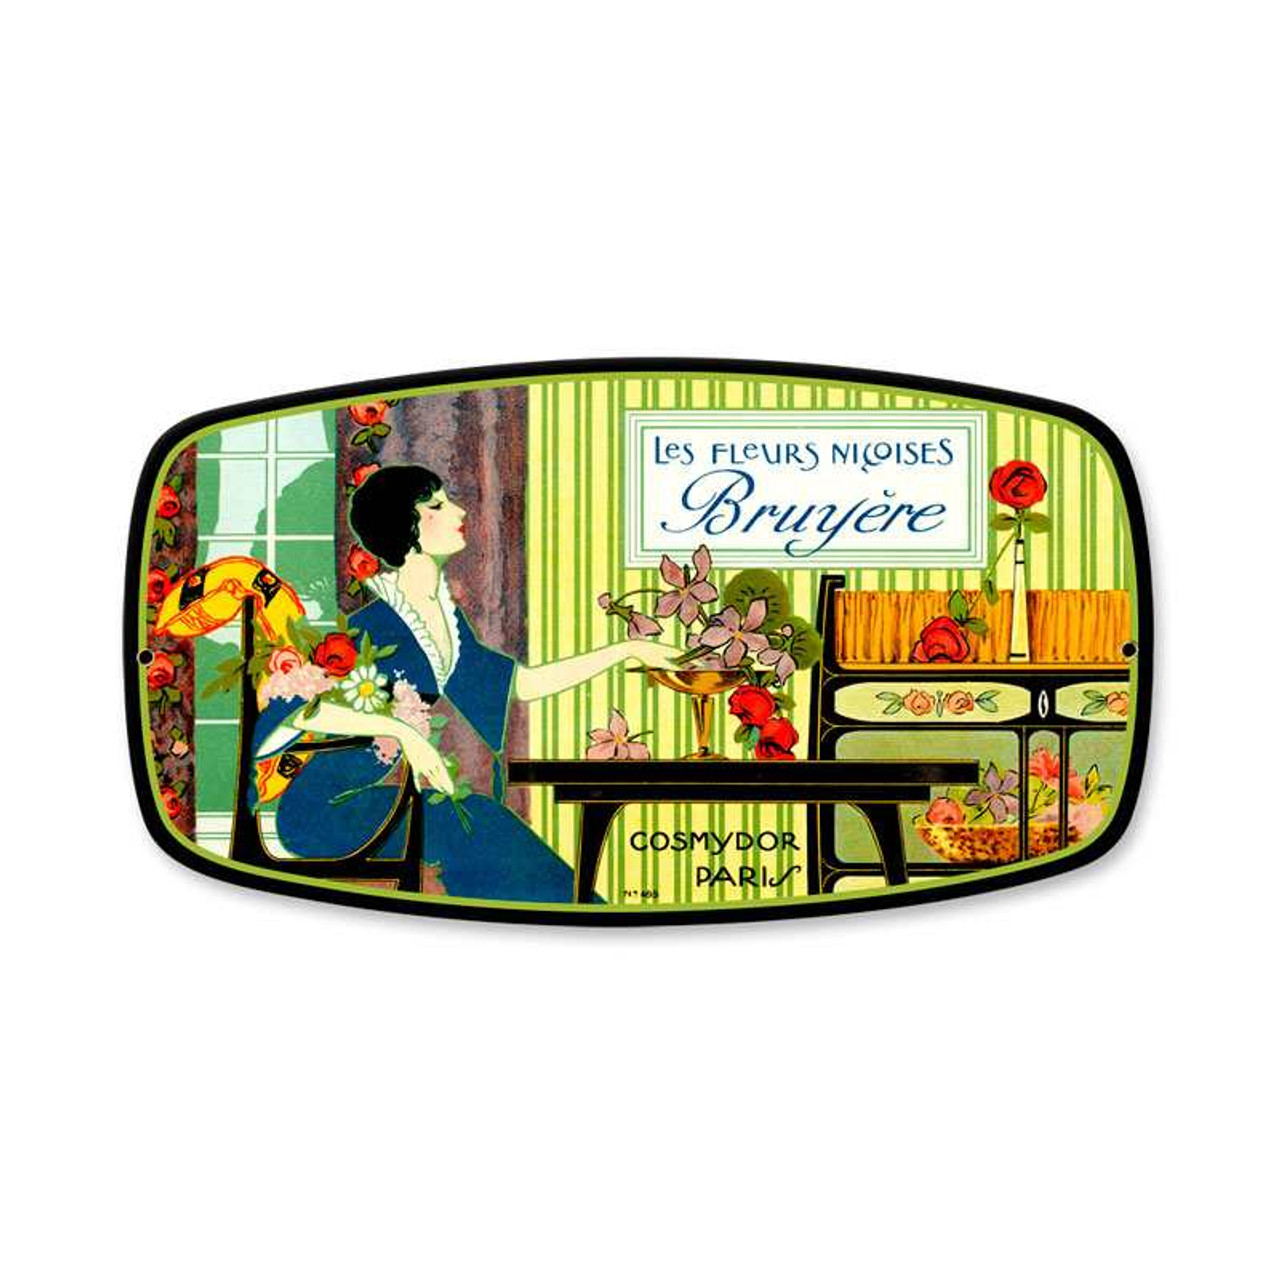 Vintage Bruyere Perfume Metal Sign  12 x 7 Inches